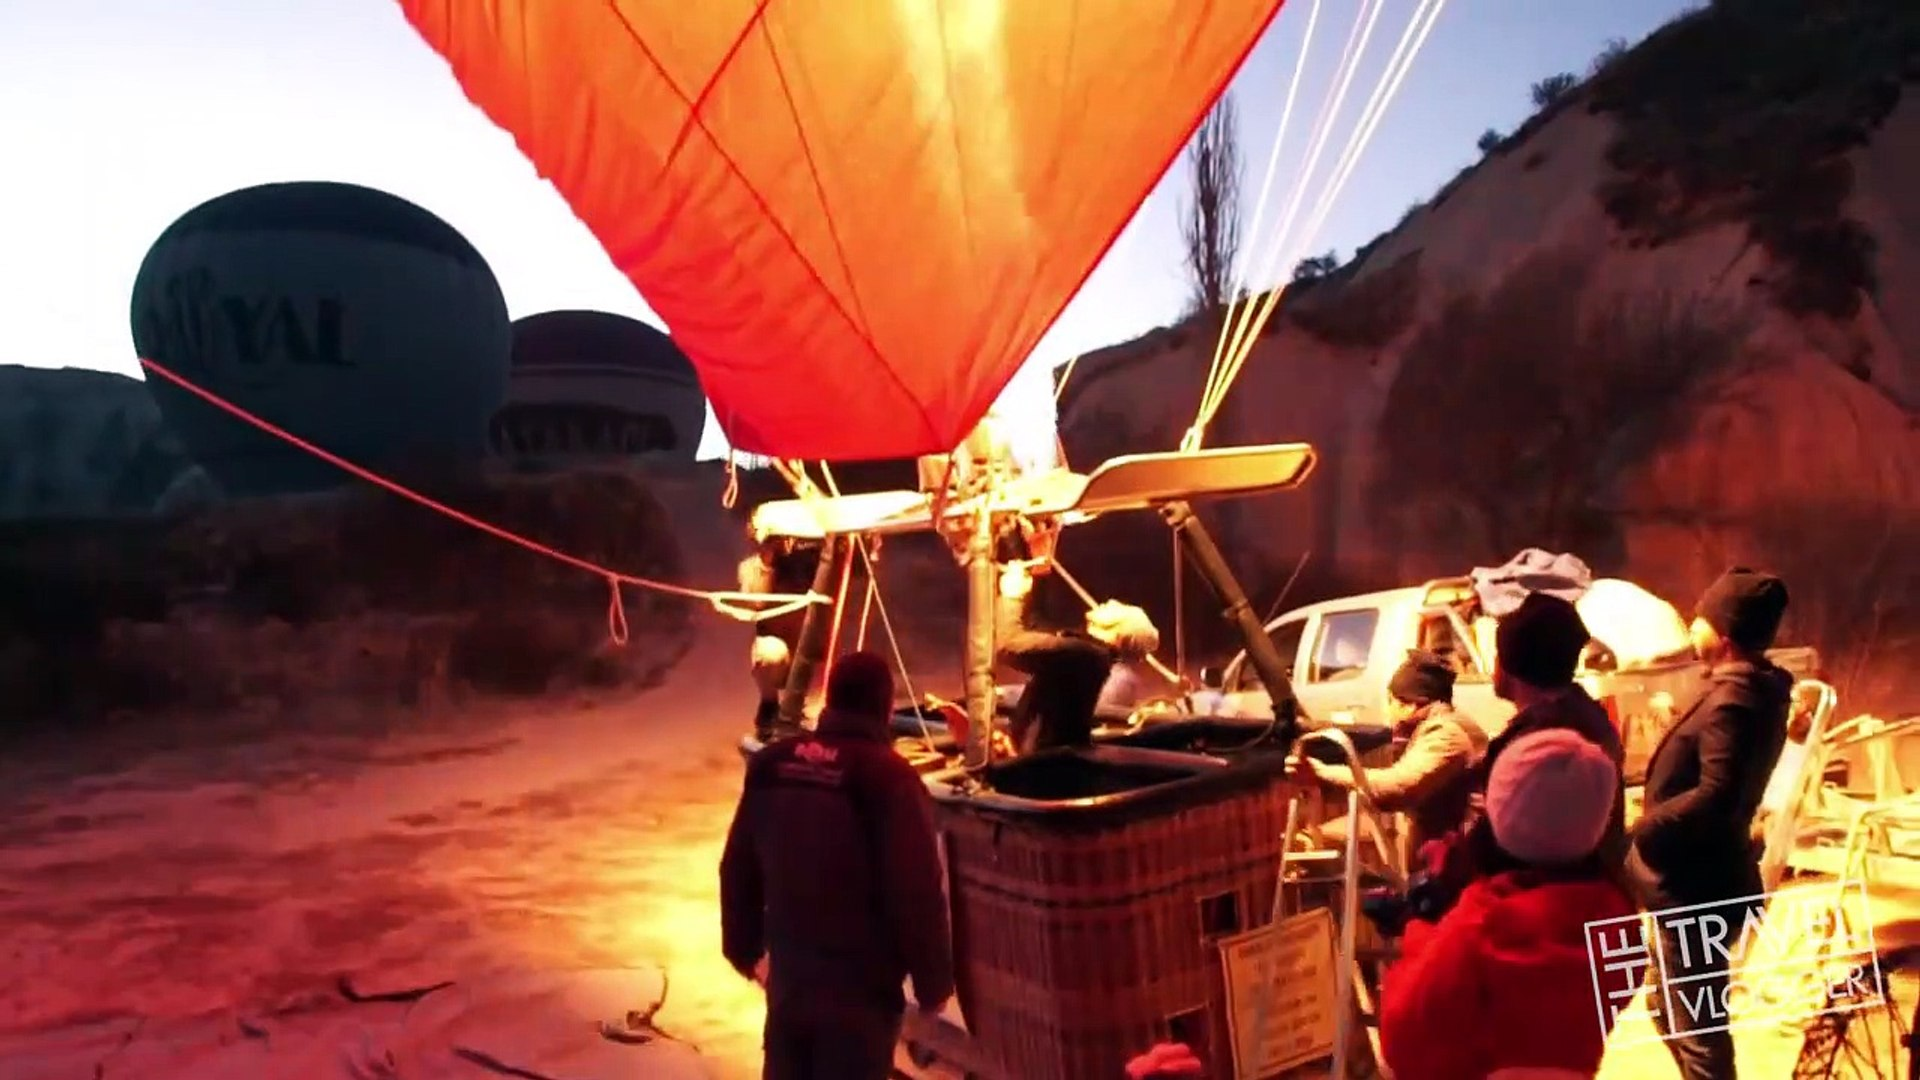 Cappadocia Top 5 Things to do - Trave